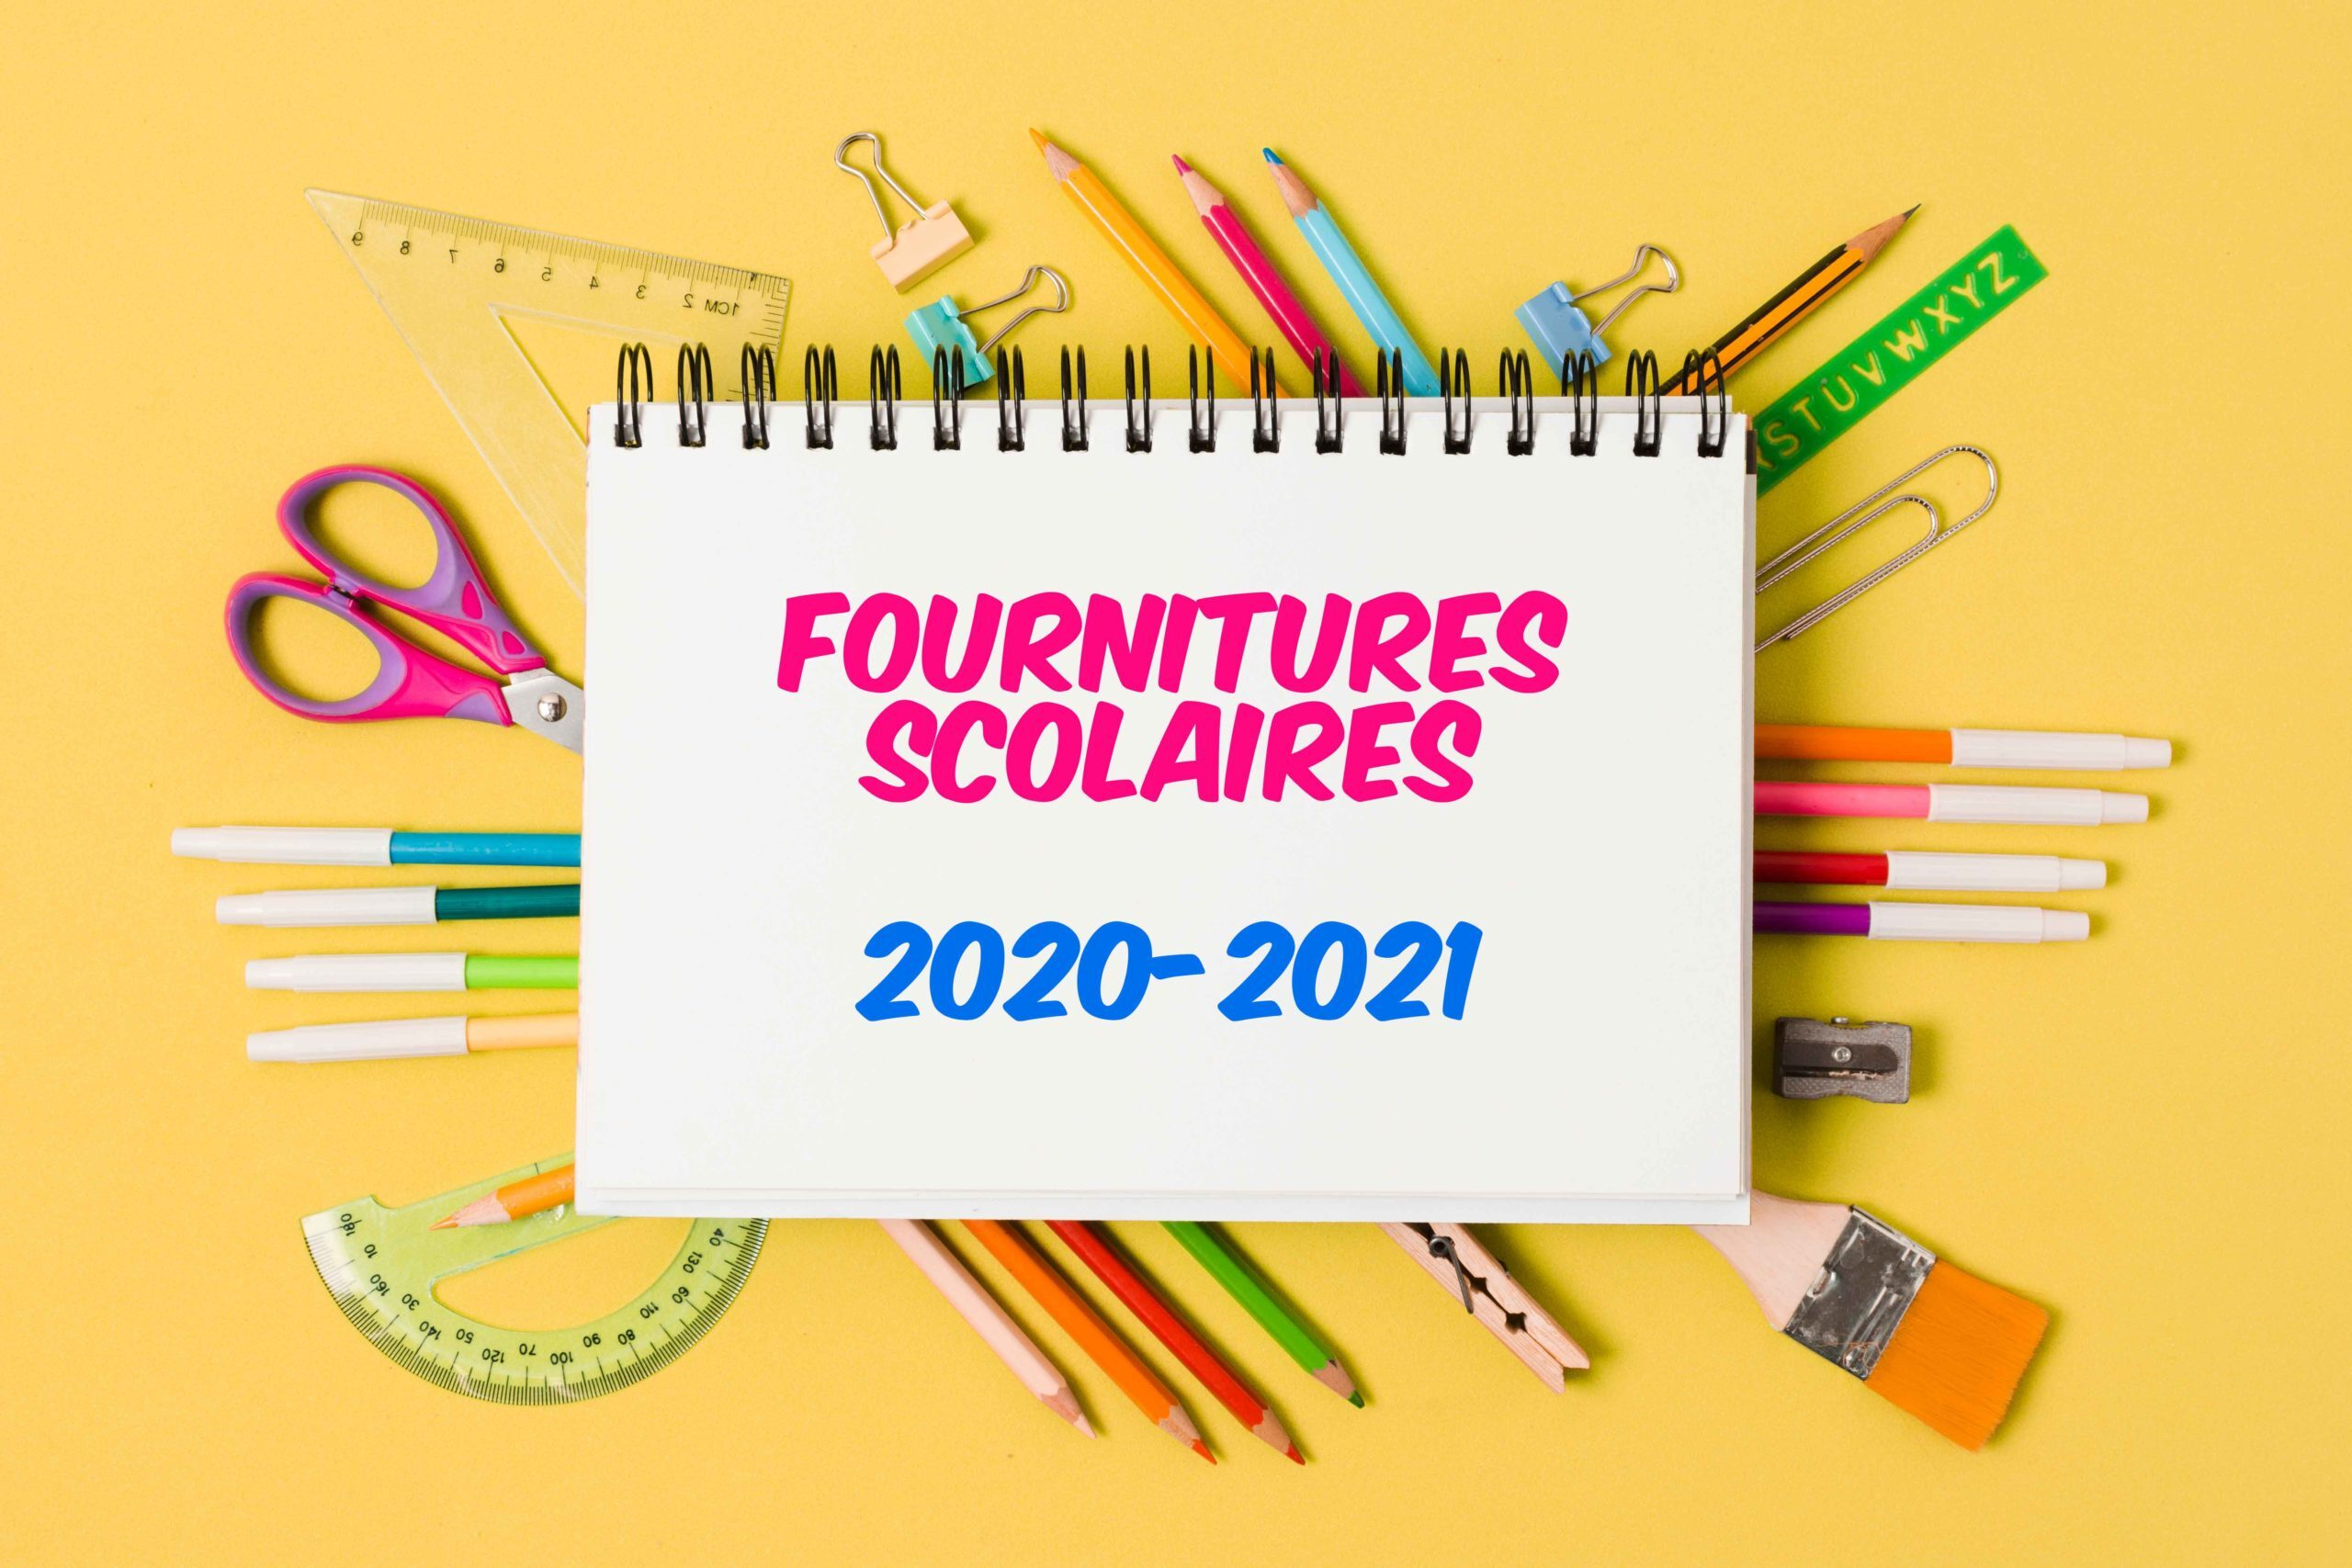 Fournitures-scolaires-2020-2021.jpg